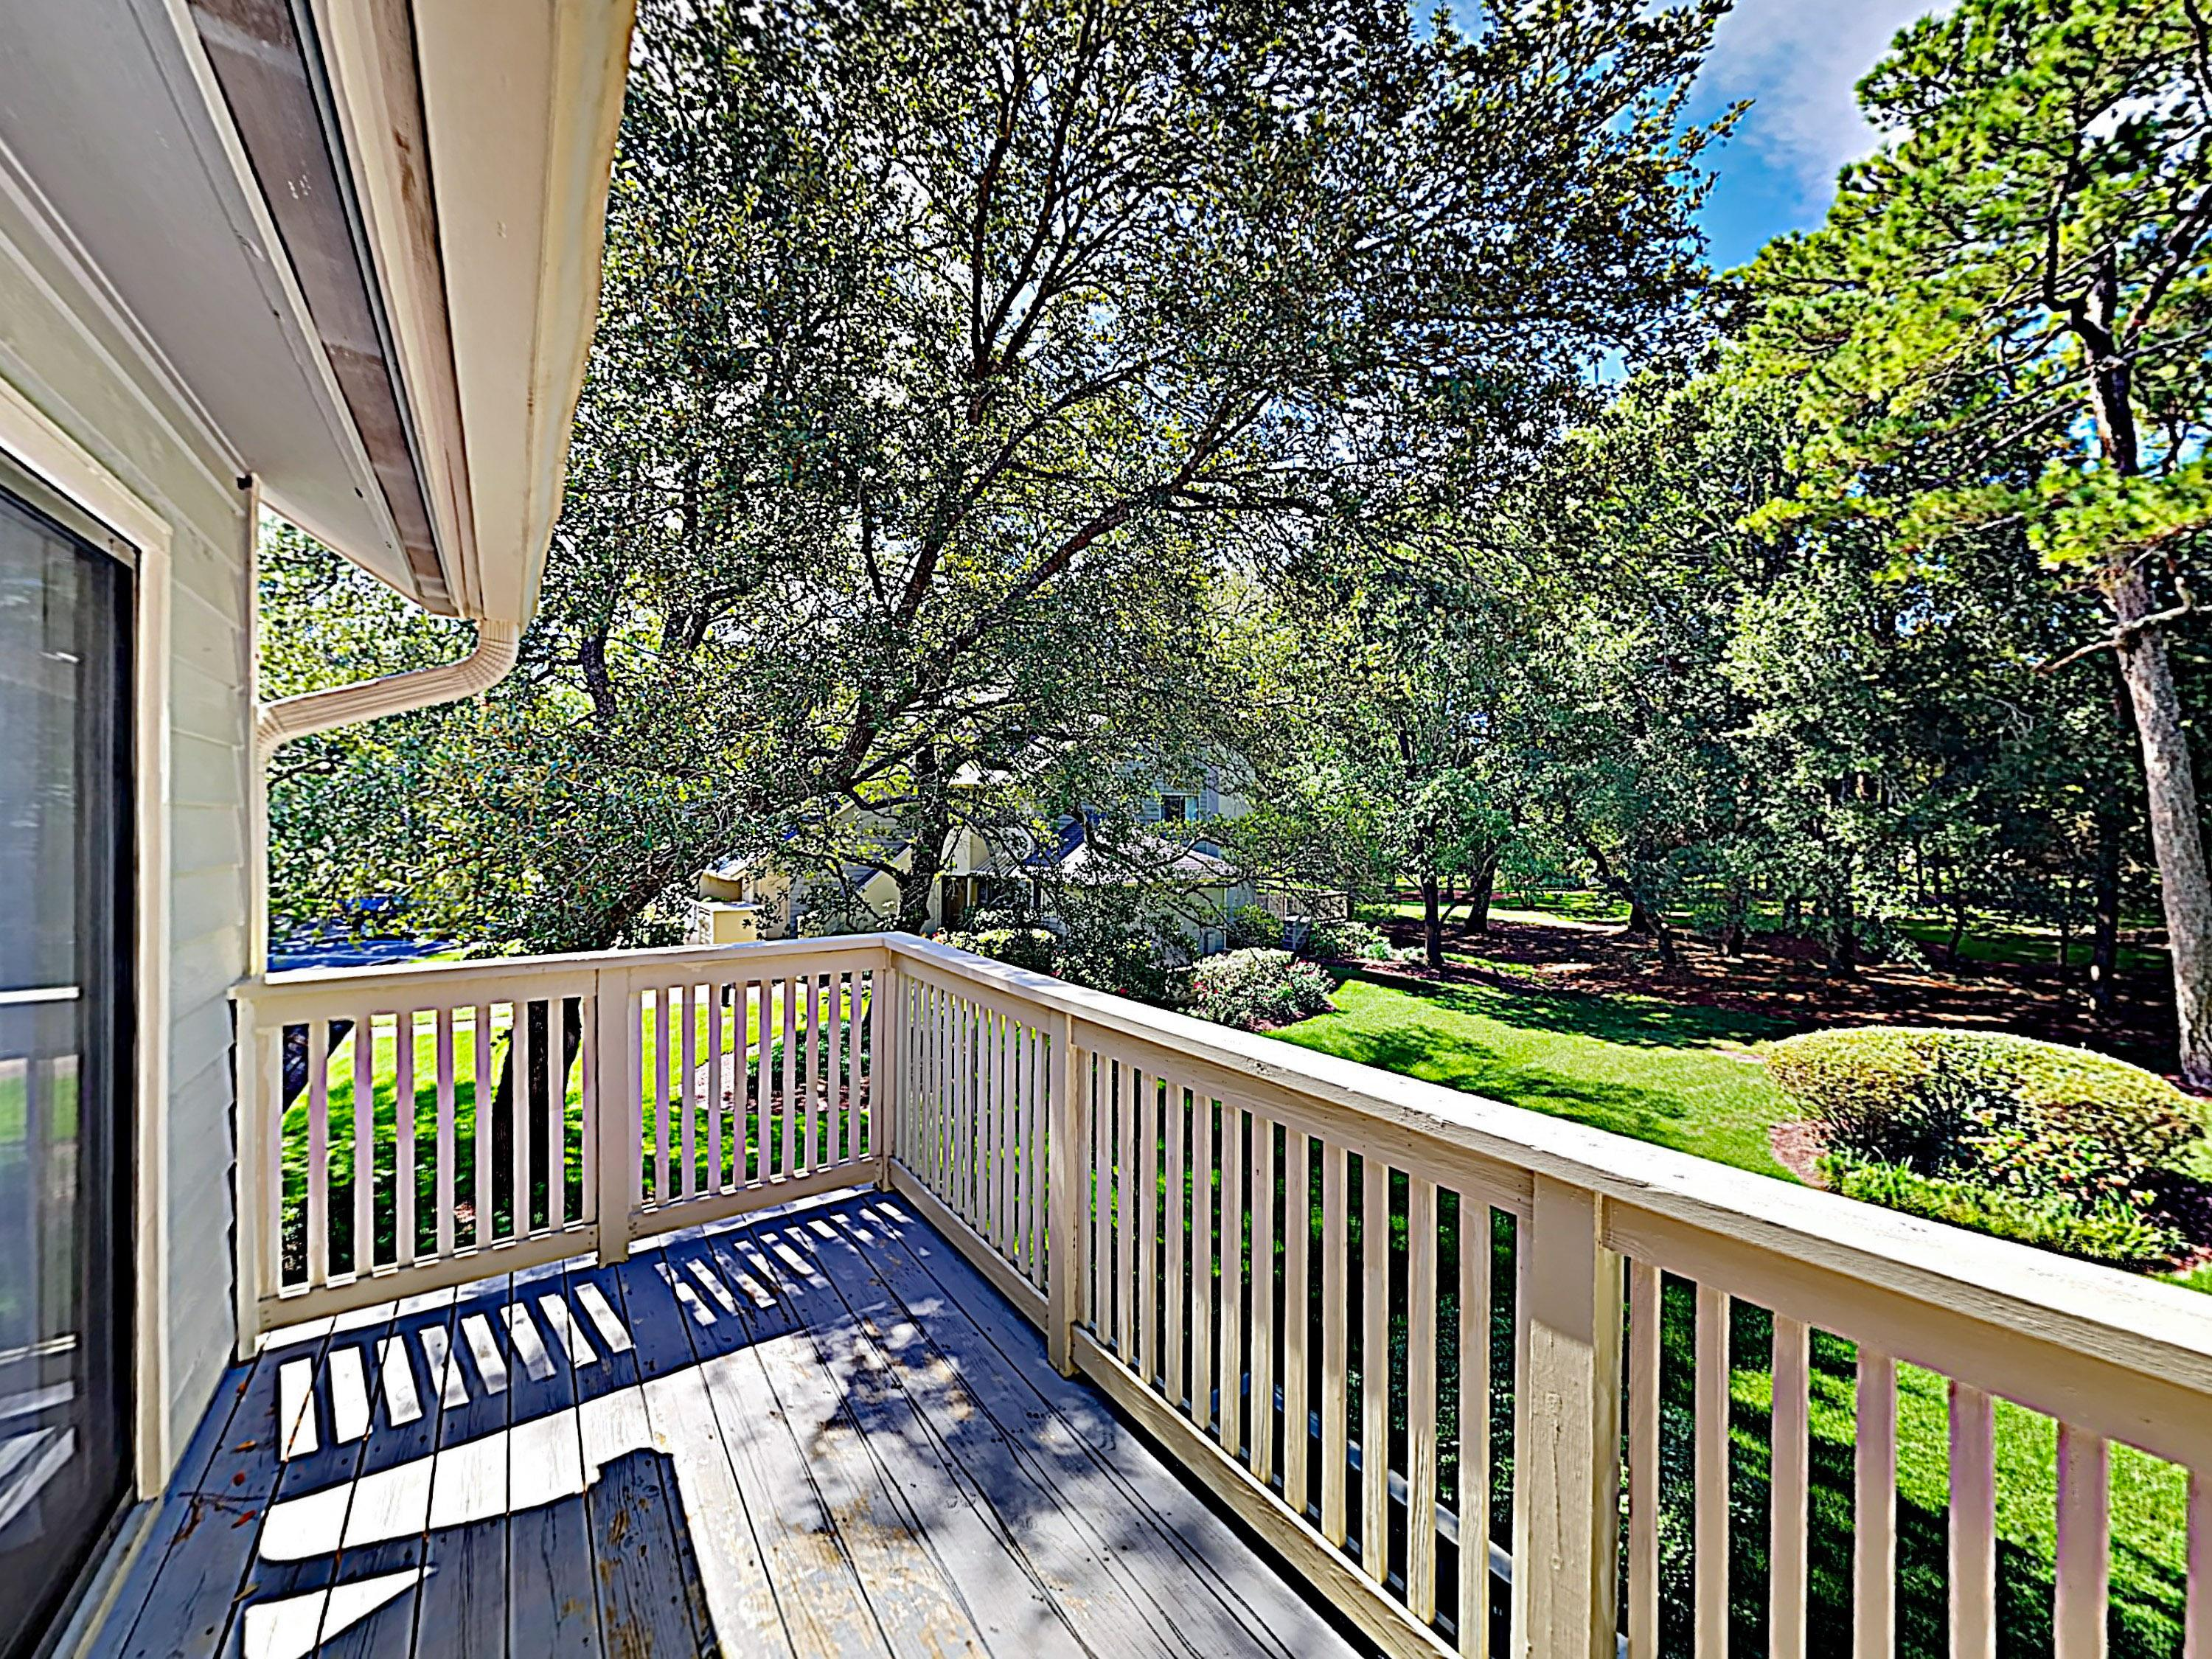 A private balcony provides greenery views of the wooded backyard.